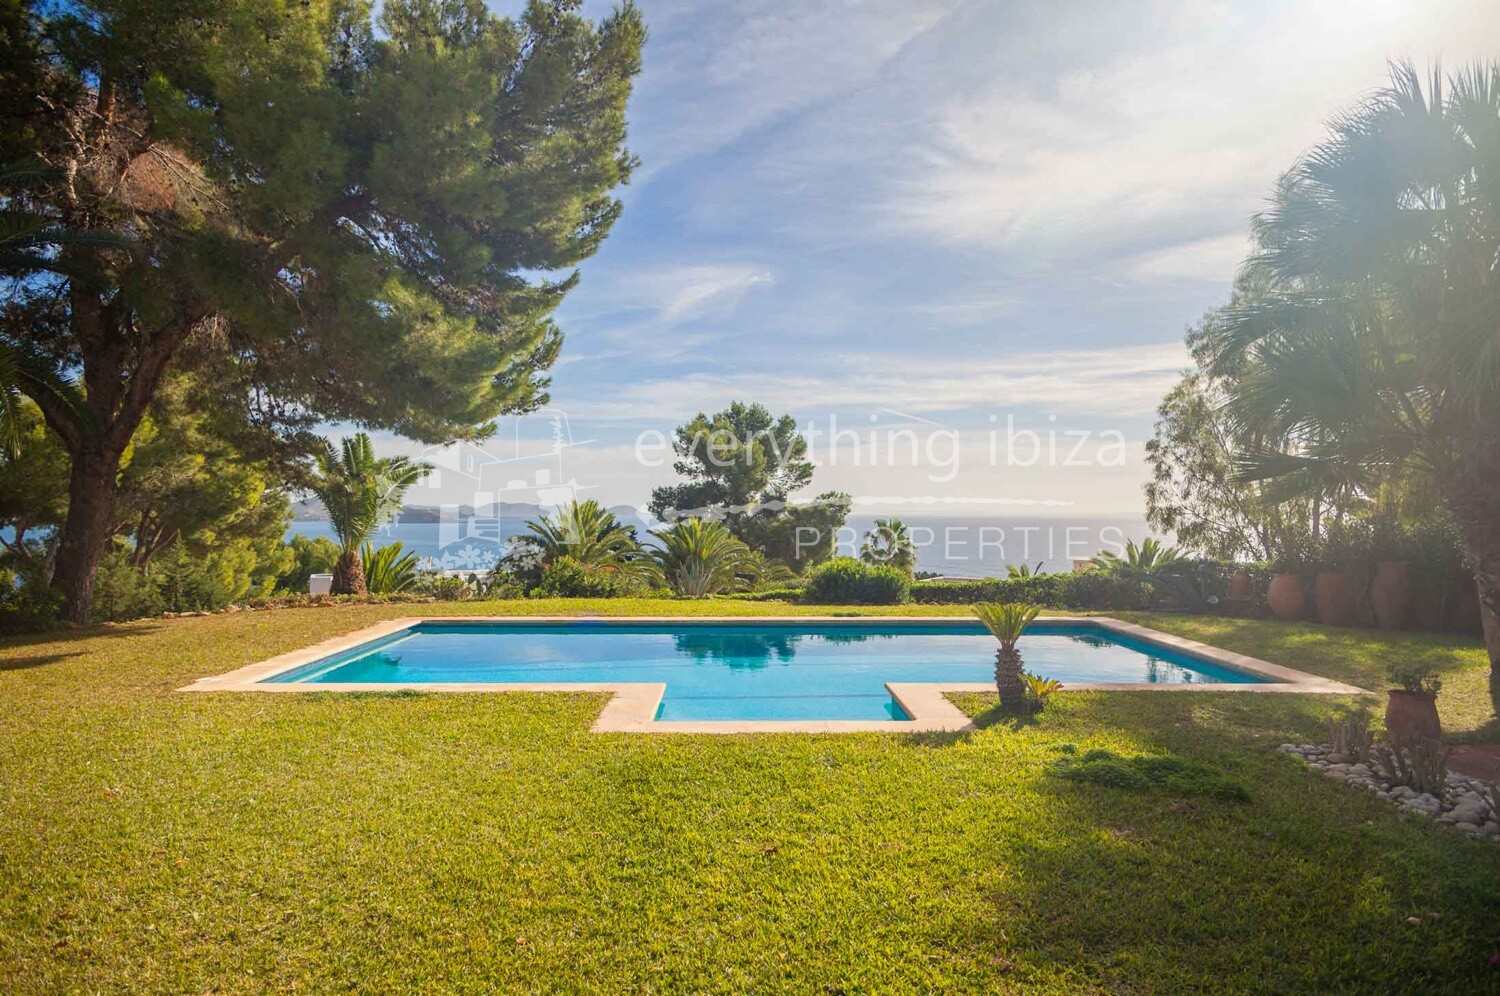 Stunning Homely Villa with Amazing Views, ref. 1359, for sale in Ibiza by everything ibiza Properties